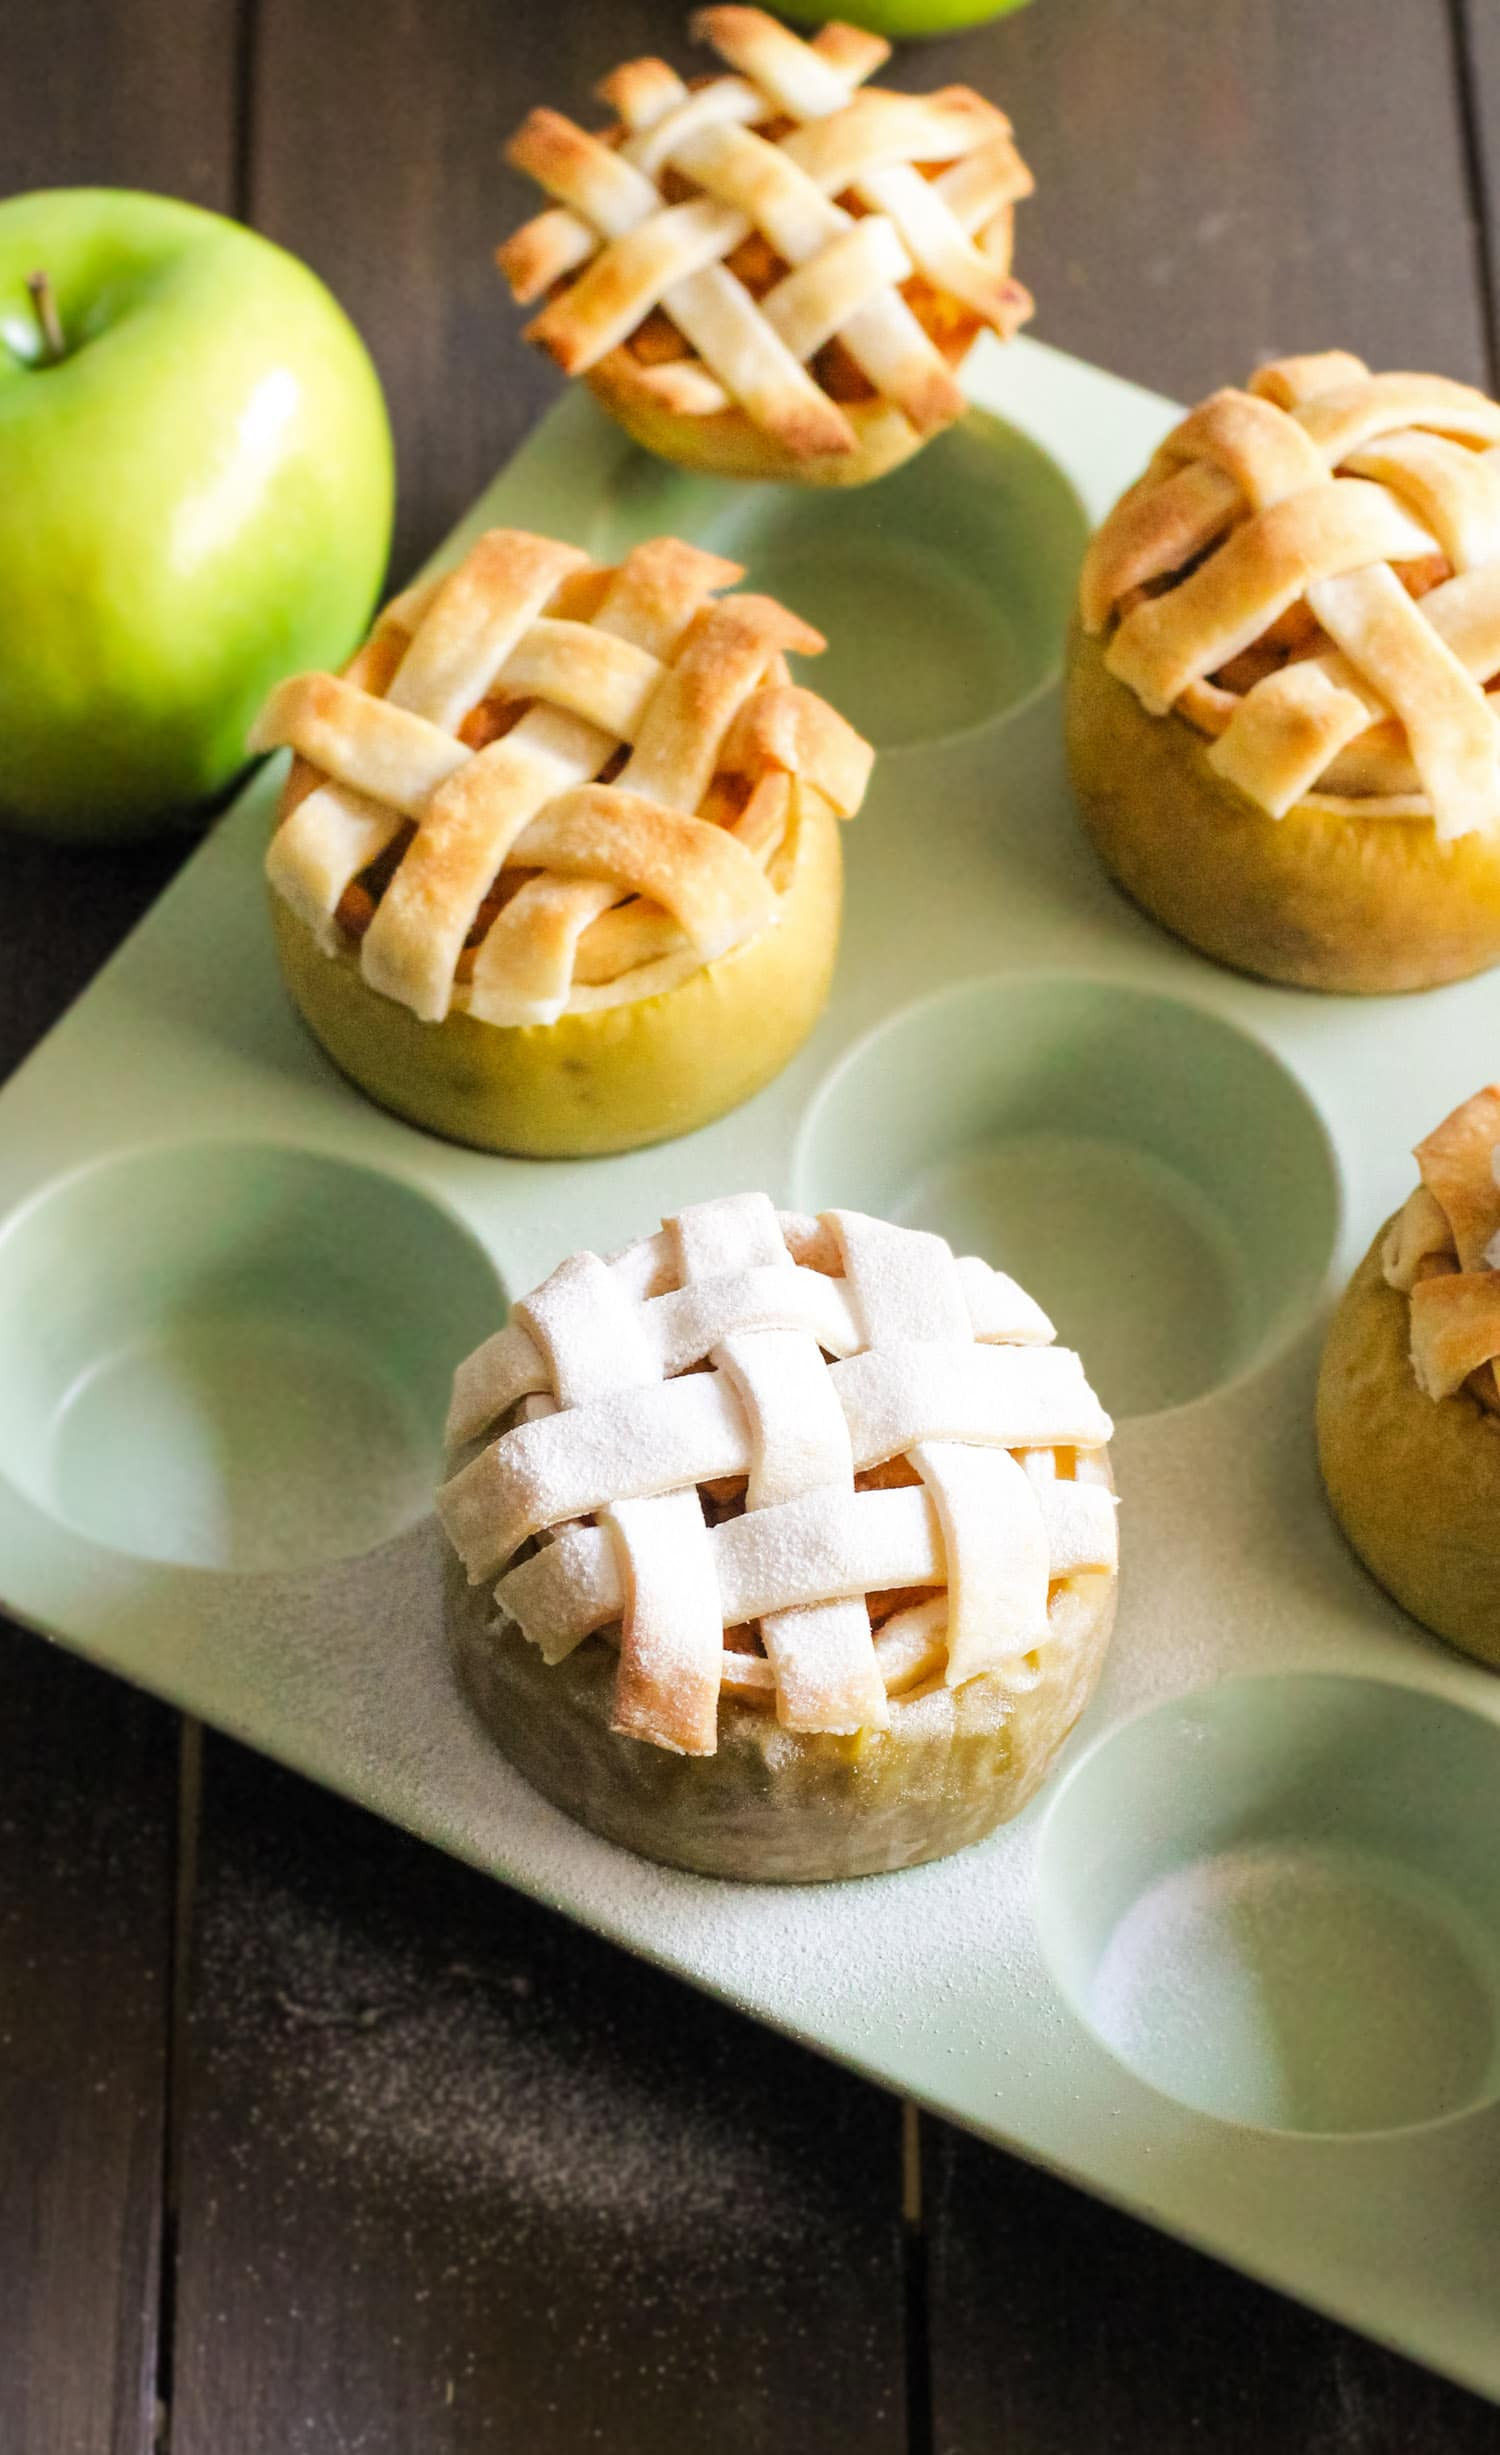 Apples Dessert Healthy  Guilt Free Apple Pie IN AN APPLE You ll wow everyone with